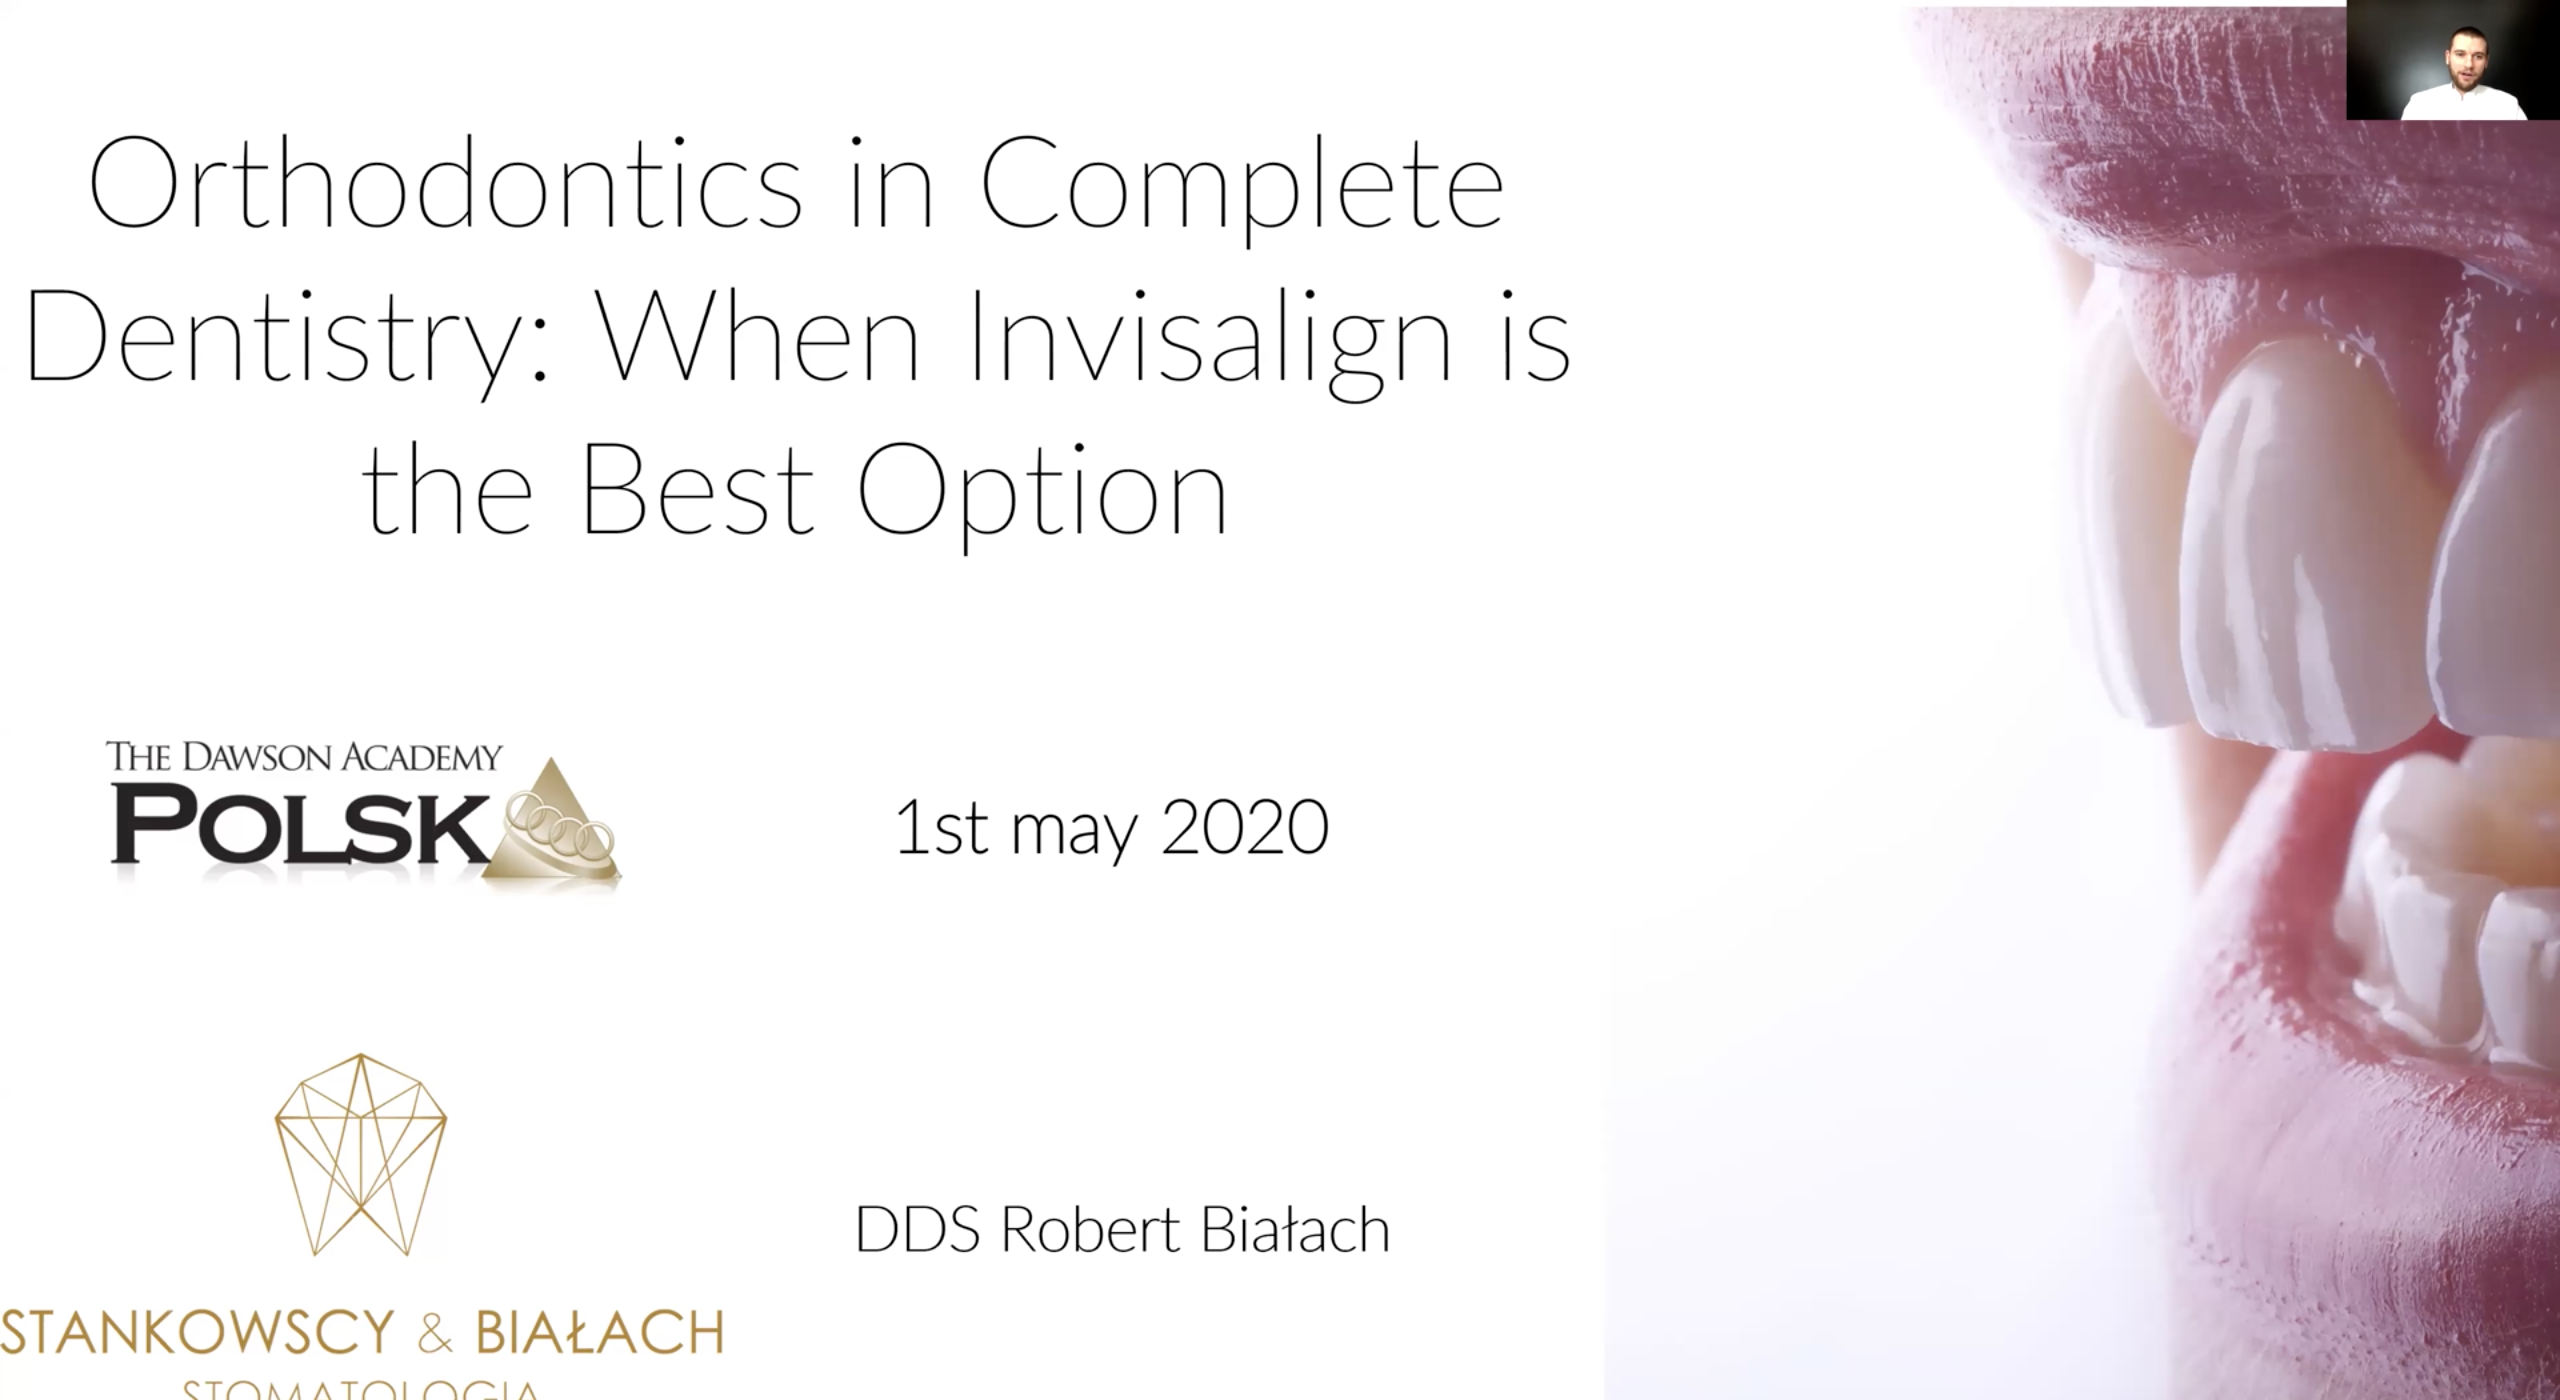 Webinar: Orthodontics in Complete Dentistry: When Invisalign is the Best Option